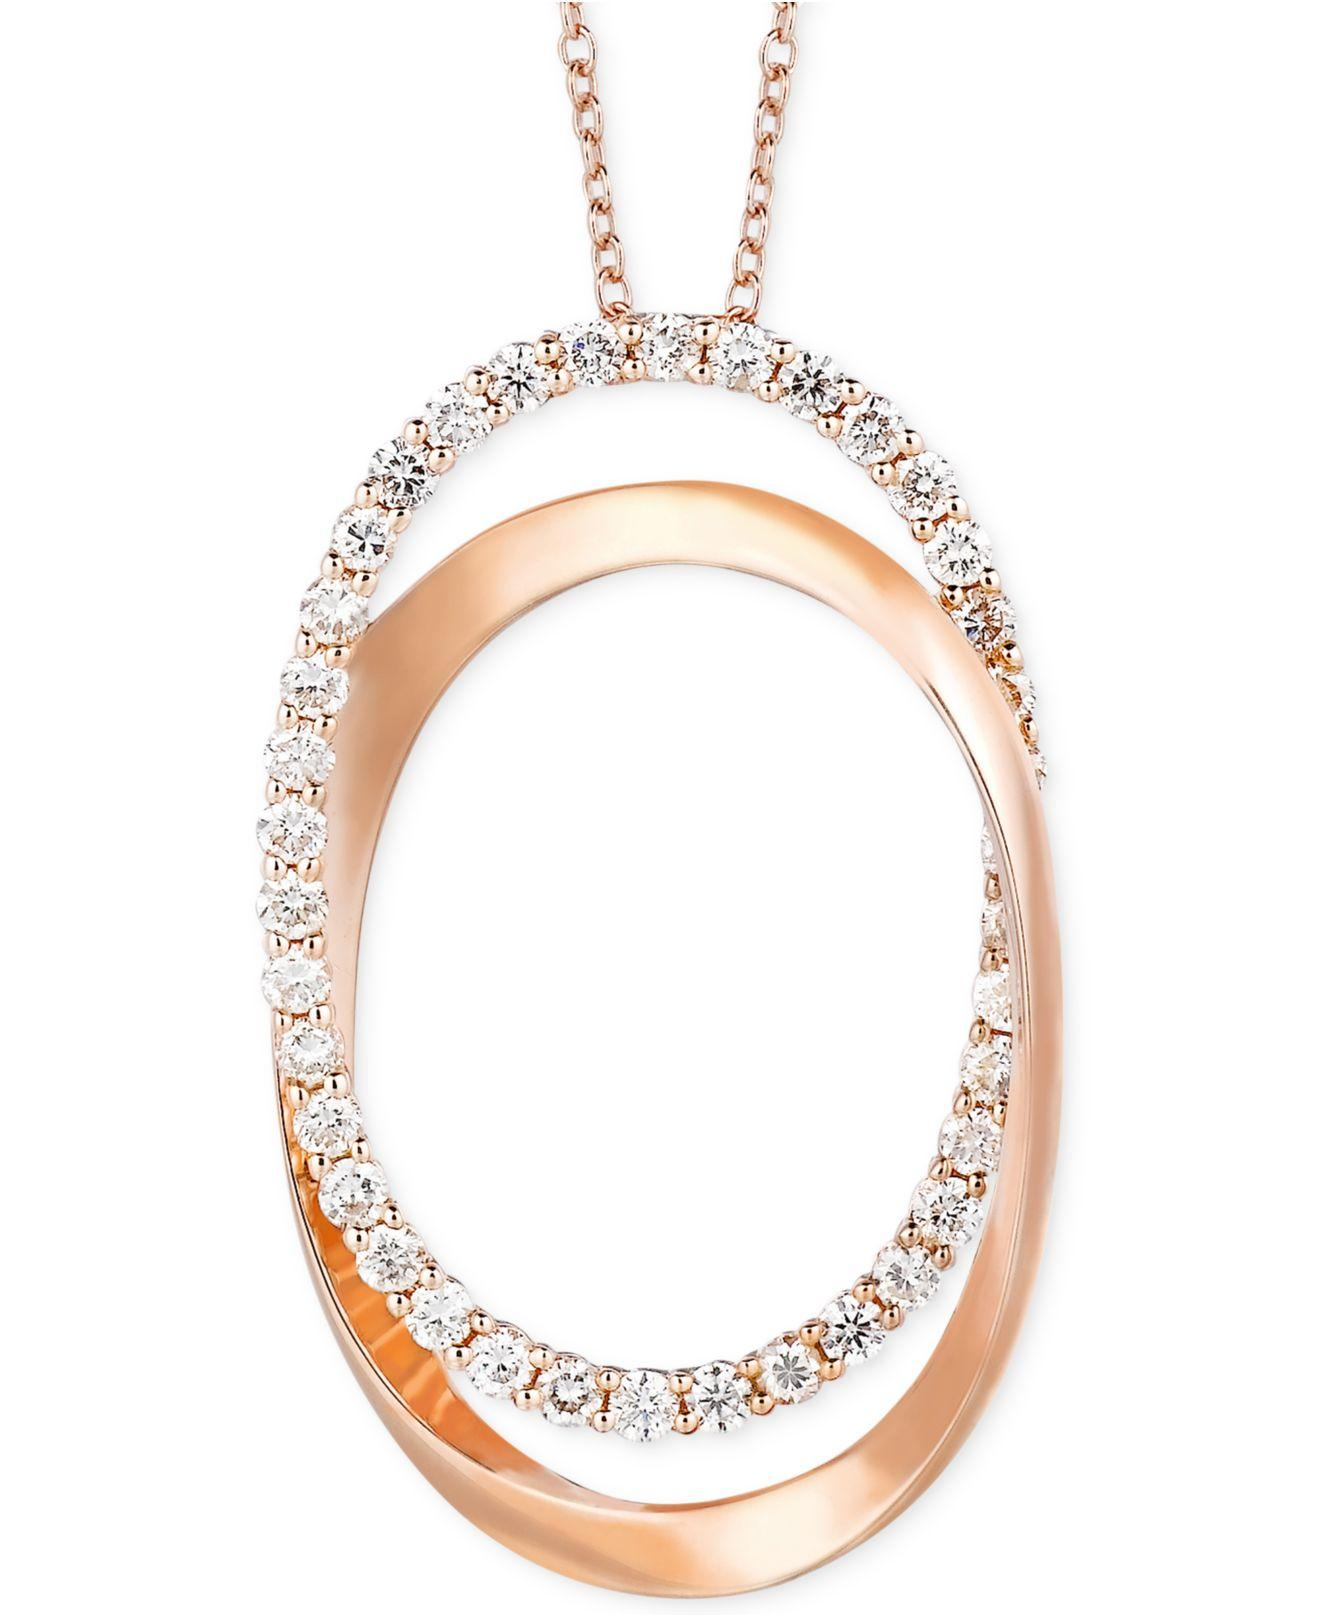 Le Vian Diamond Oval Pendant Necklace In 14k Rose Gold (5. Wired Necklace. Time Teller Watches. 14k Yellow Gold Bangle Bracelet. Engagement Bands. Triangular Necklace. White Gold Bar Pendant. Ankle Gps Tracker. Amazing Bracelet